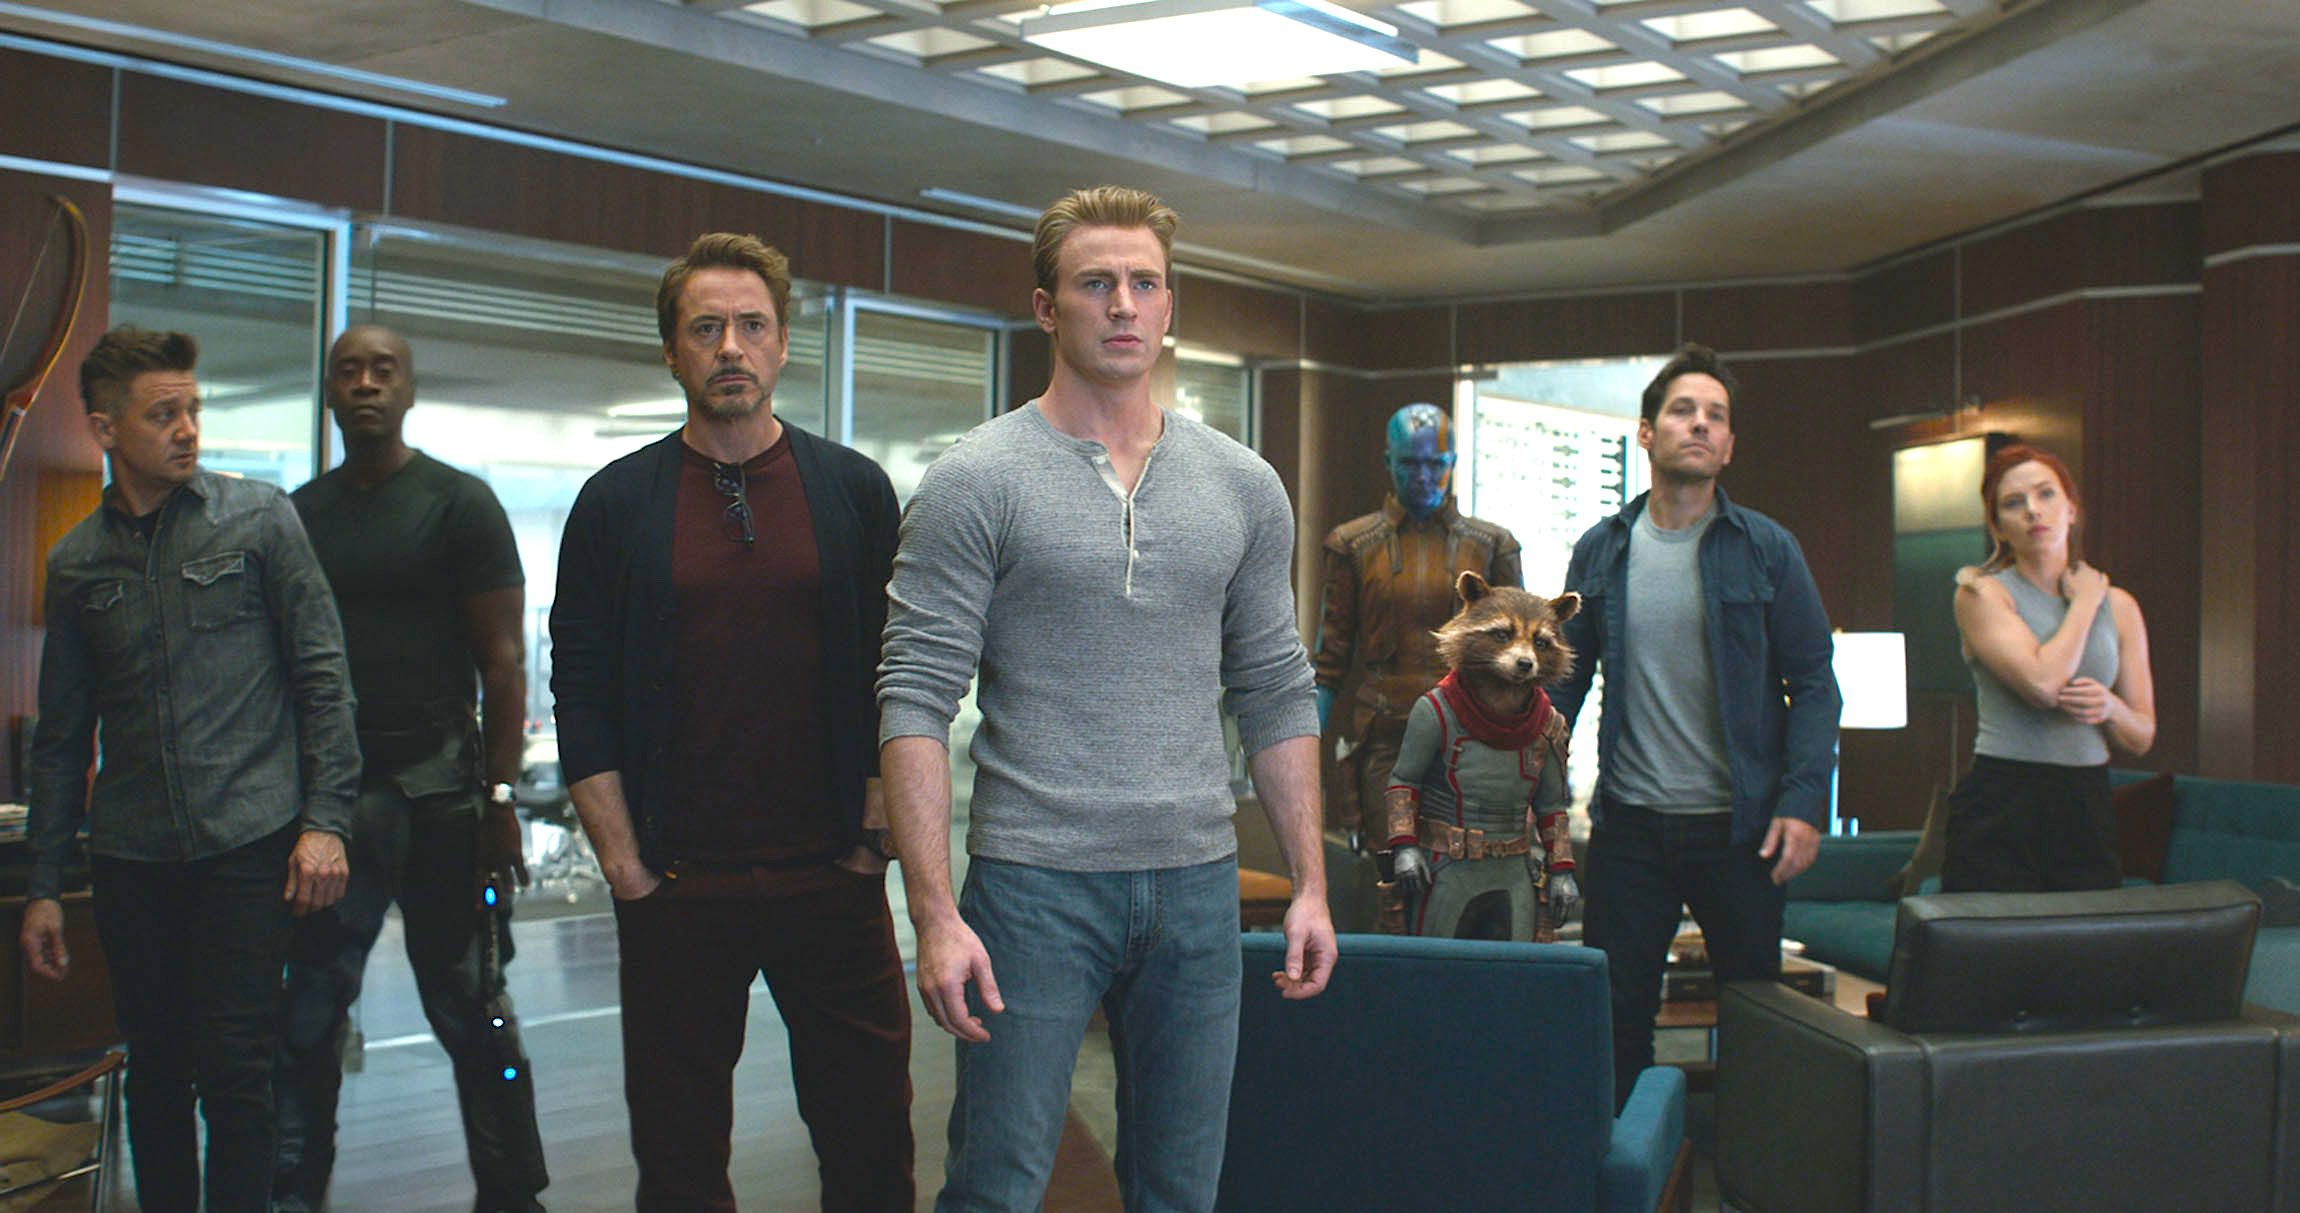 Avengers: Endgame Is Proof That Nothing Matters